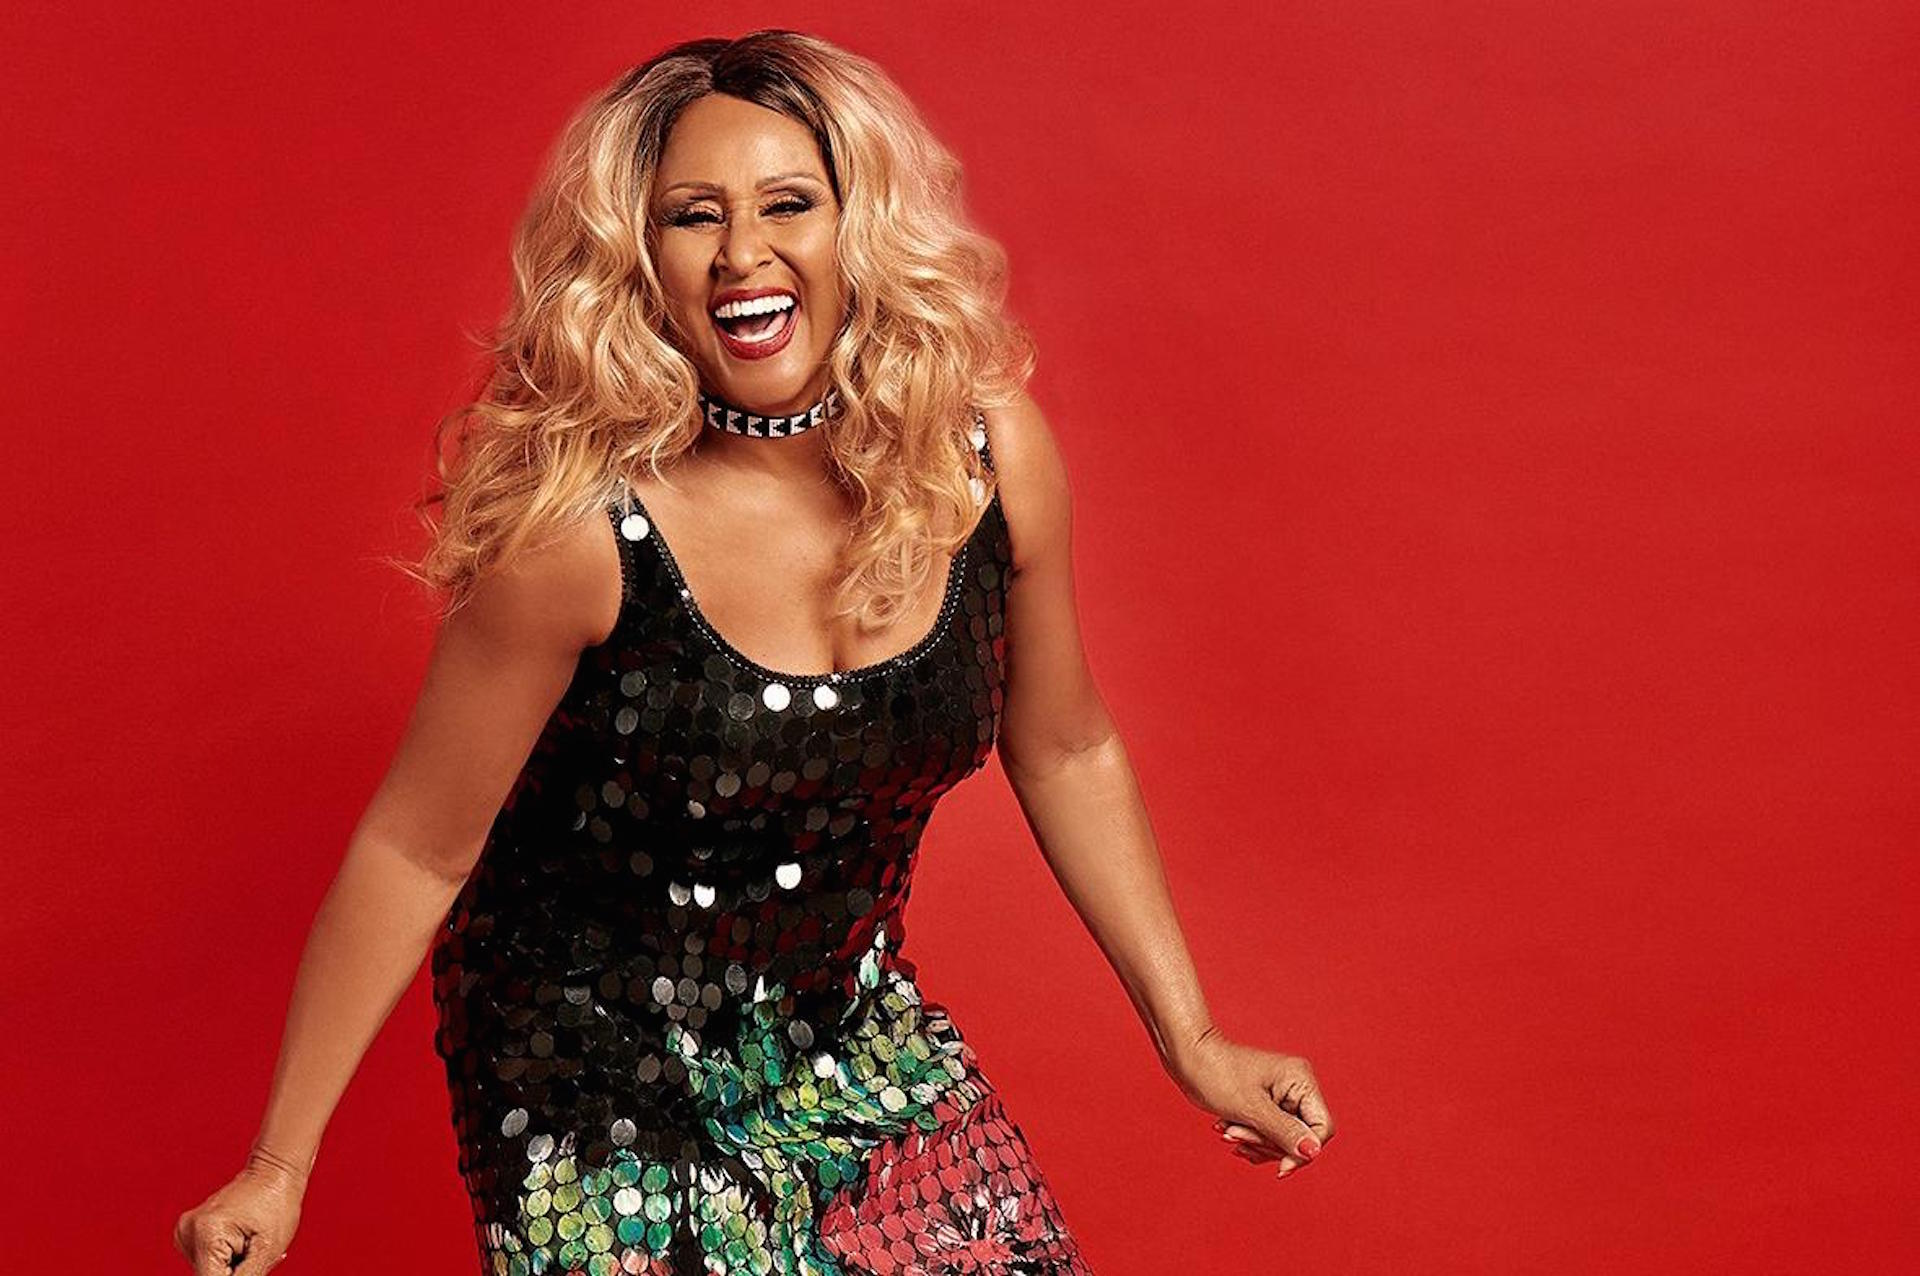 PODCAST EPISODE 026: Darlene Love Talks Holidays, Phil Spector, and '20 Feet from Stardom'